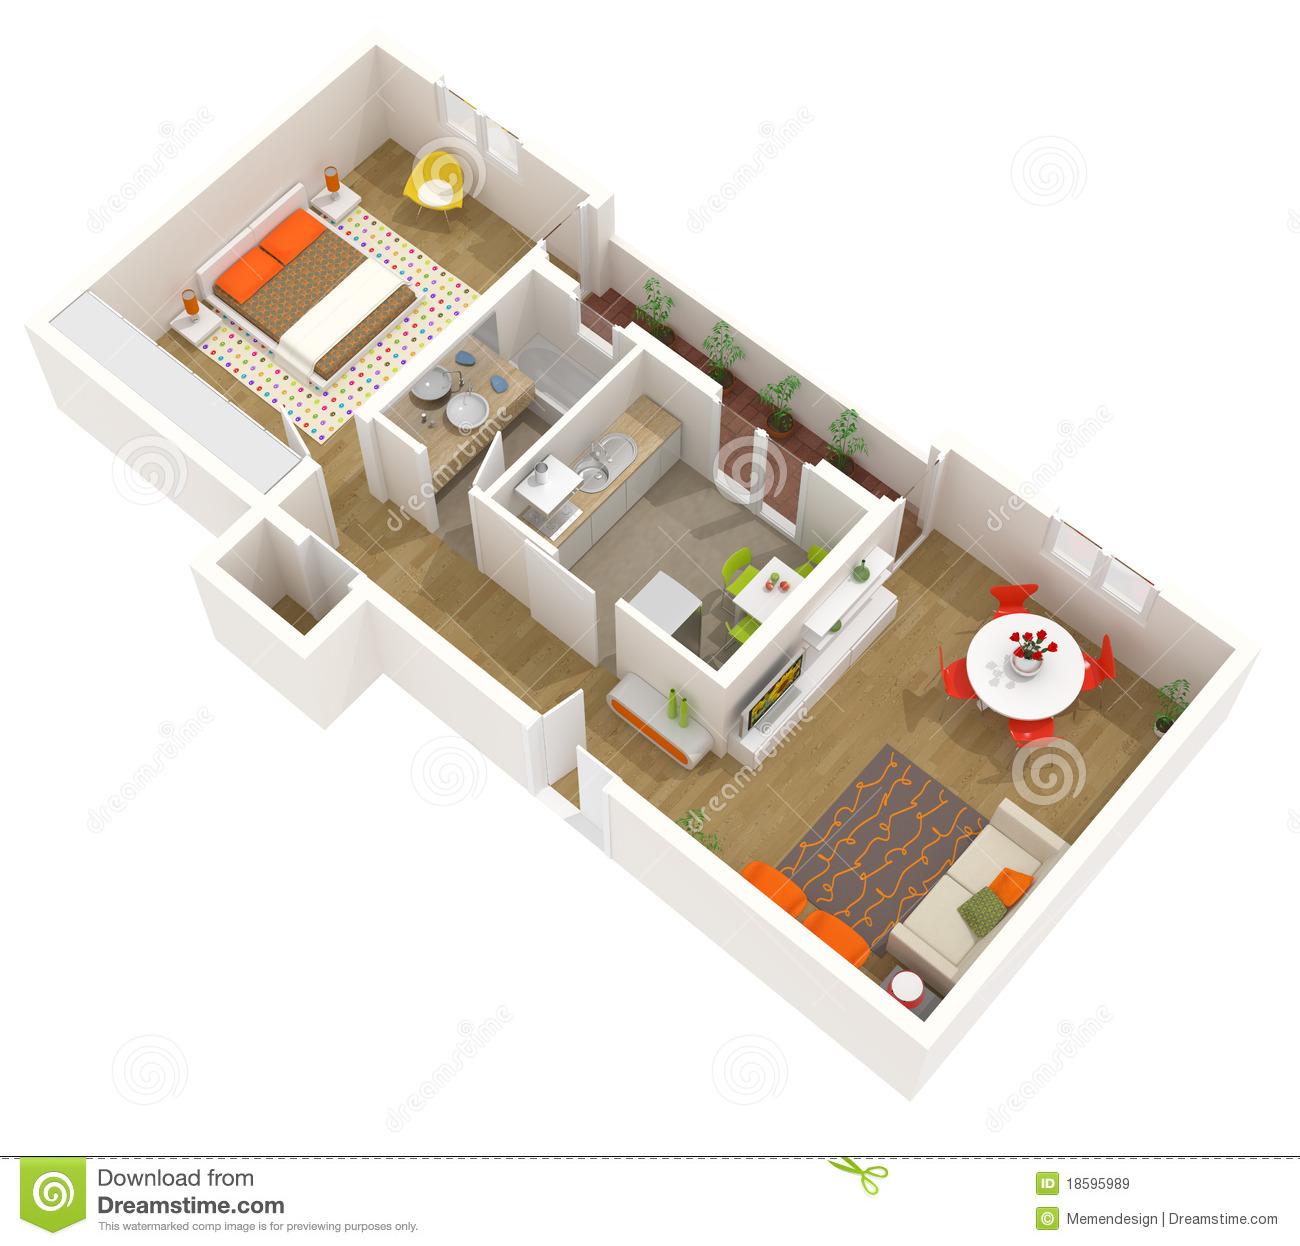 Grundrisse Haus 125 Qm Apartment Interior Design - 3d Floor Plan Stock